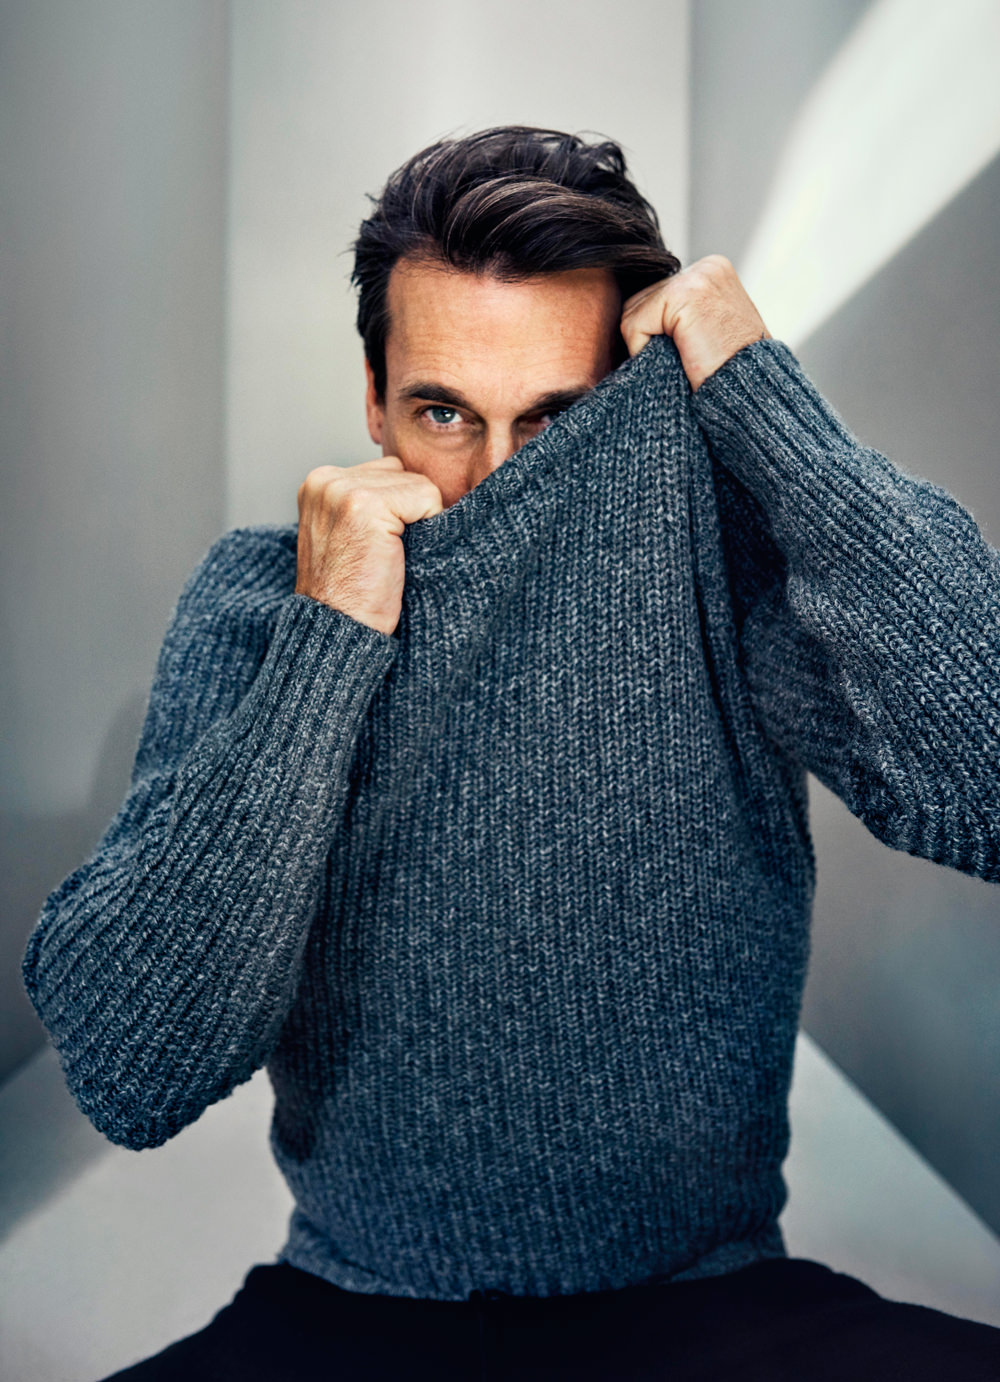 jon-hamm-mad-men-keeping-up-with-the-joneses-mr-porter-the-journal-style-guide-editorial-tom-lorenzo-site-1